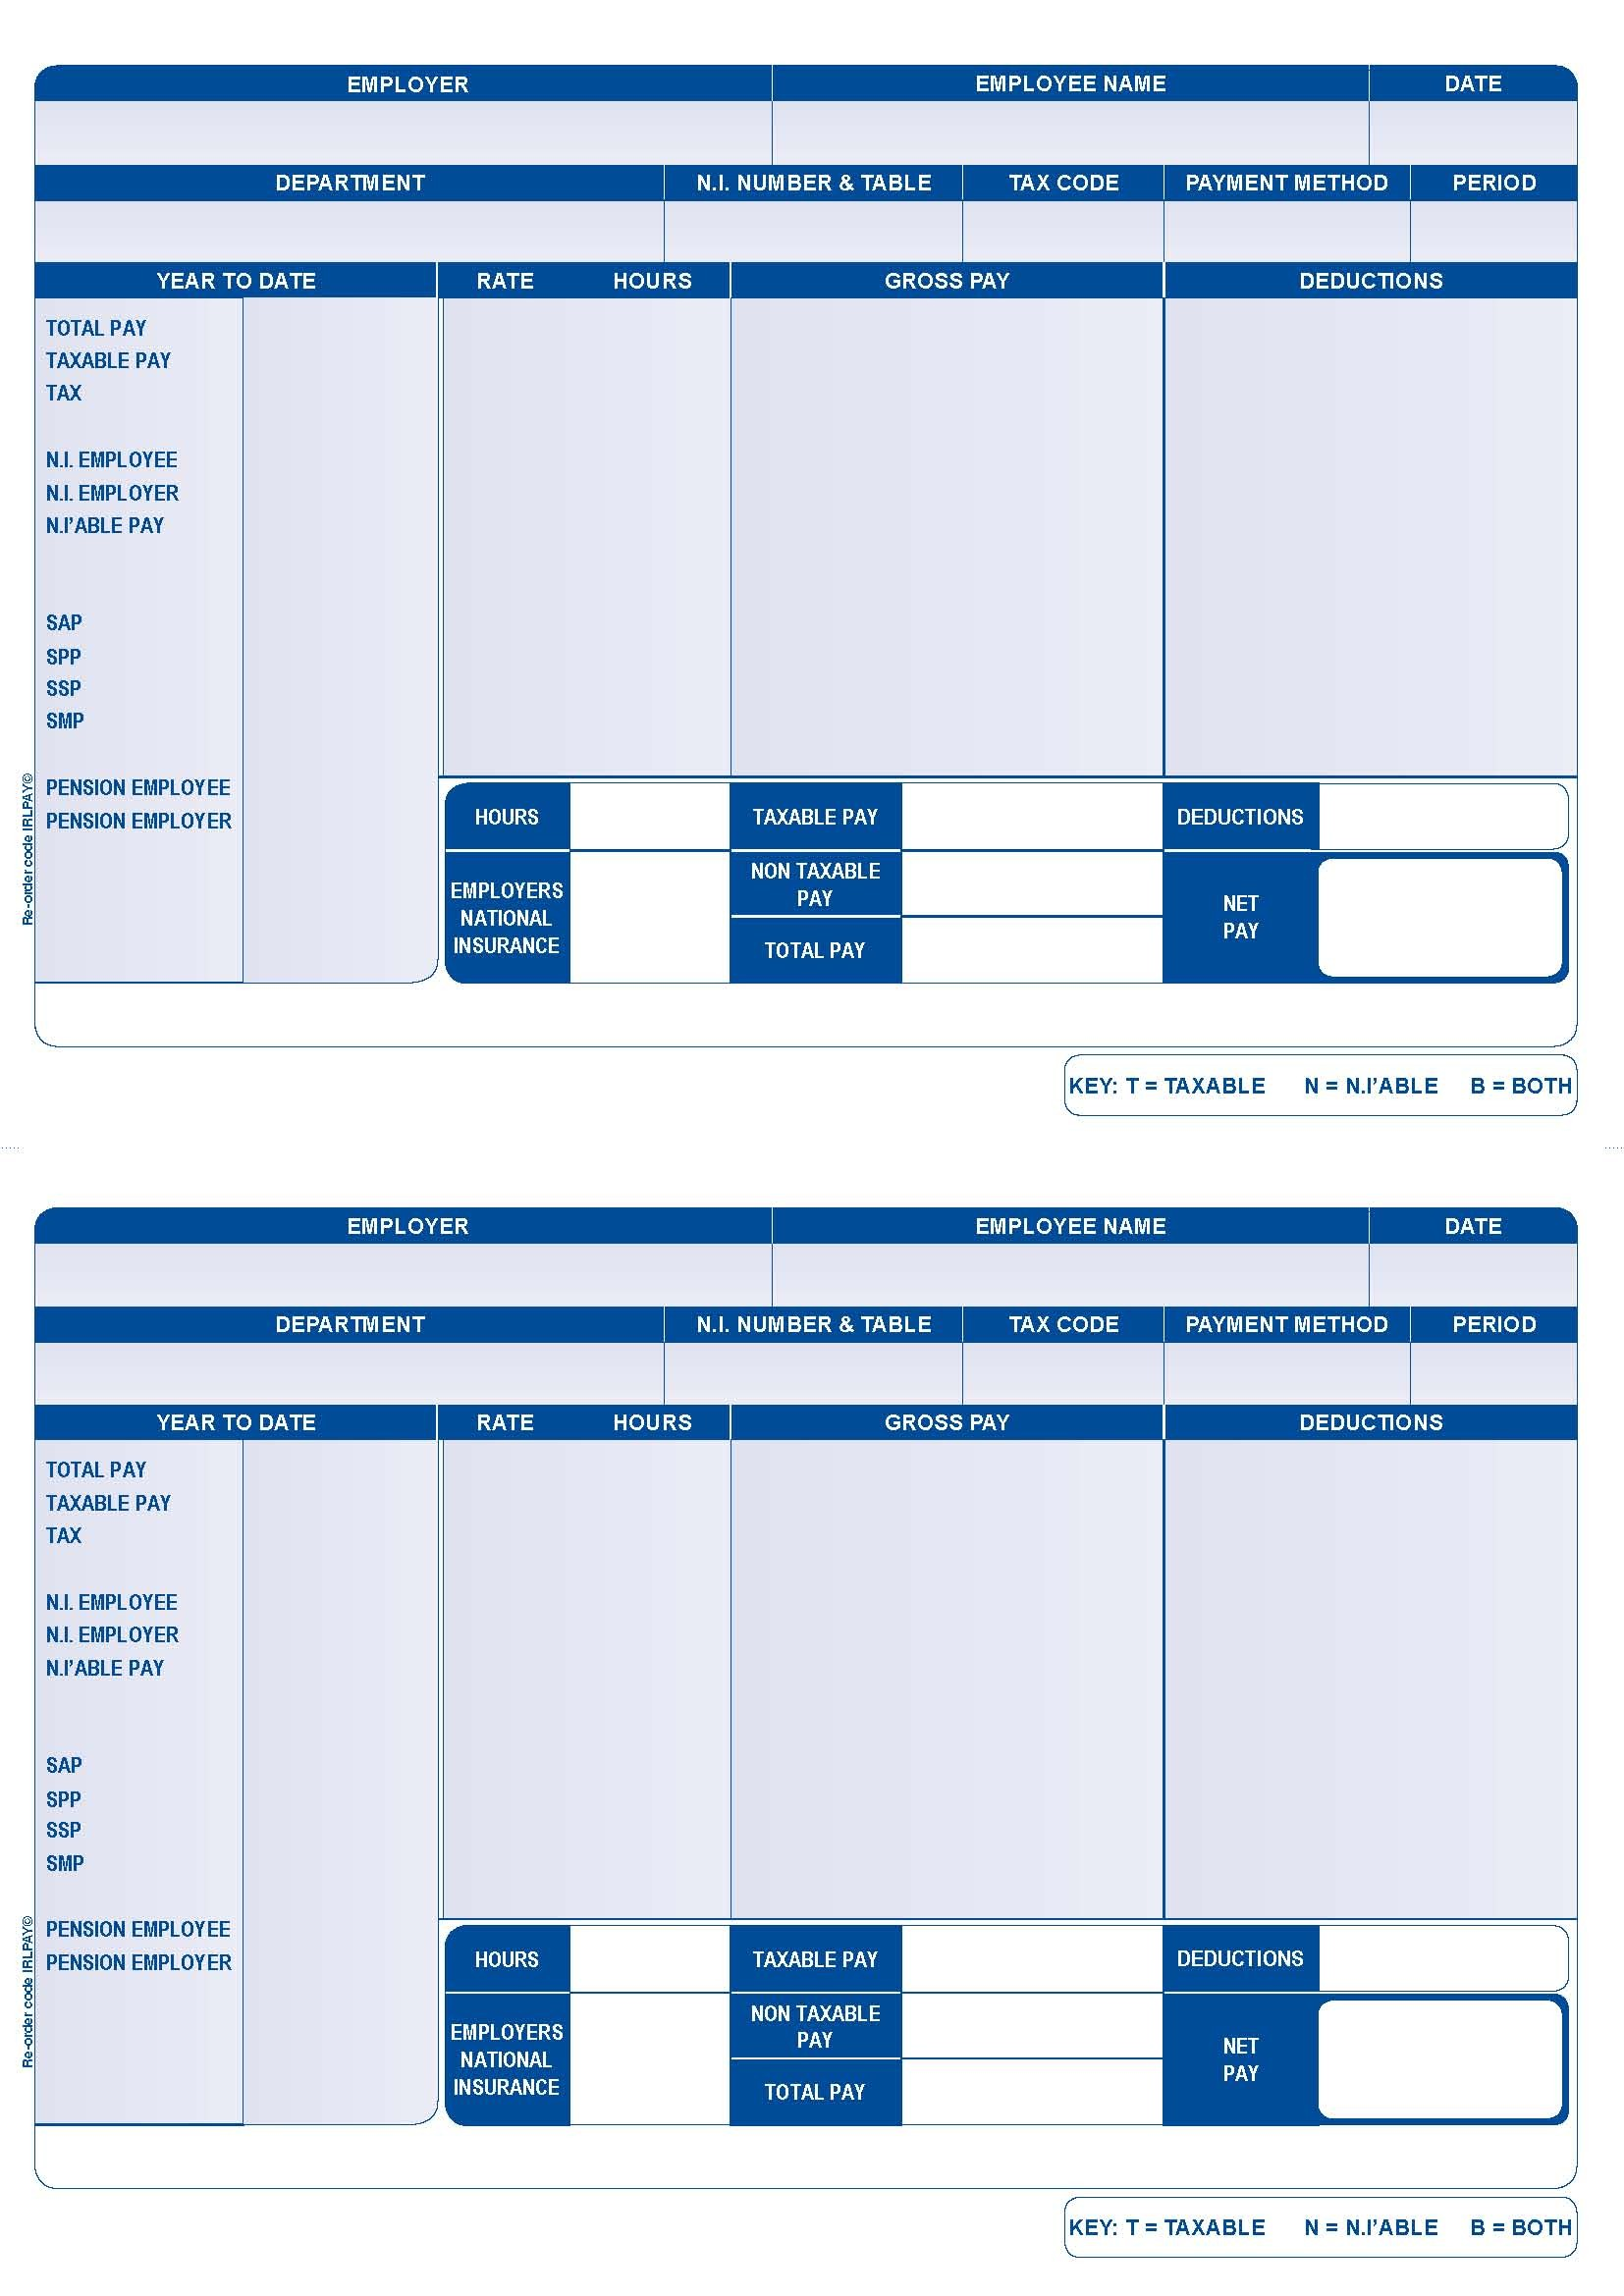 Original Forms For Iris/Intex Payroll Software  Free Payslip Template Uk